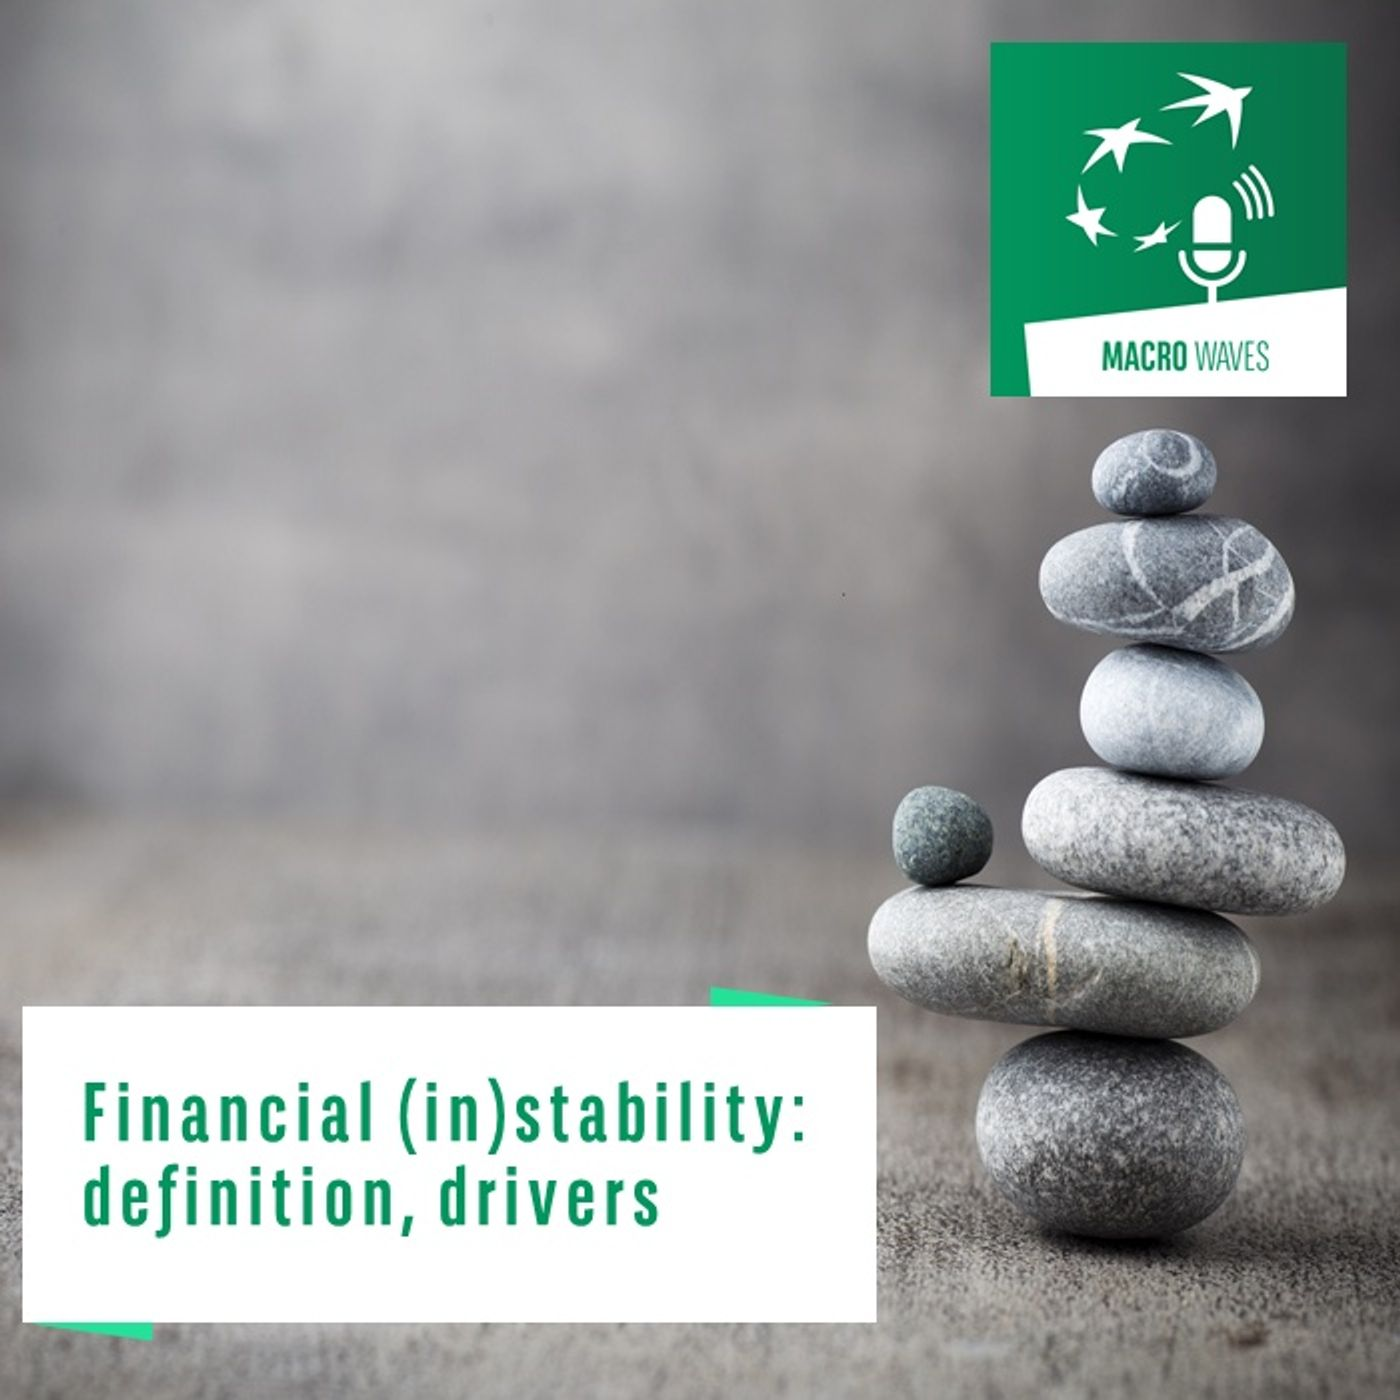 #01 – Financial (in)stability: definition, drivers